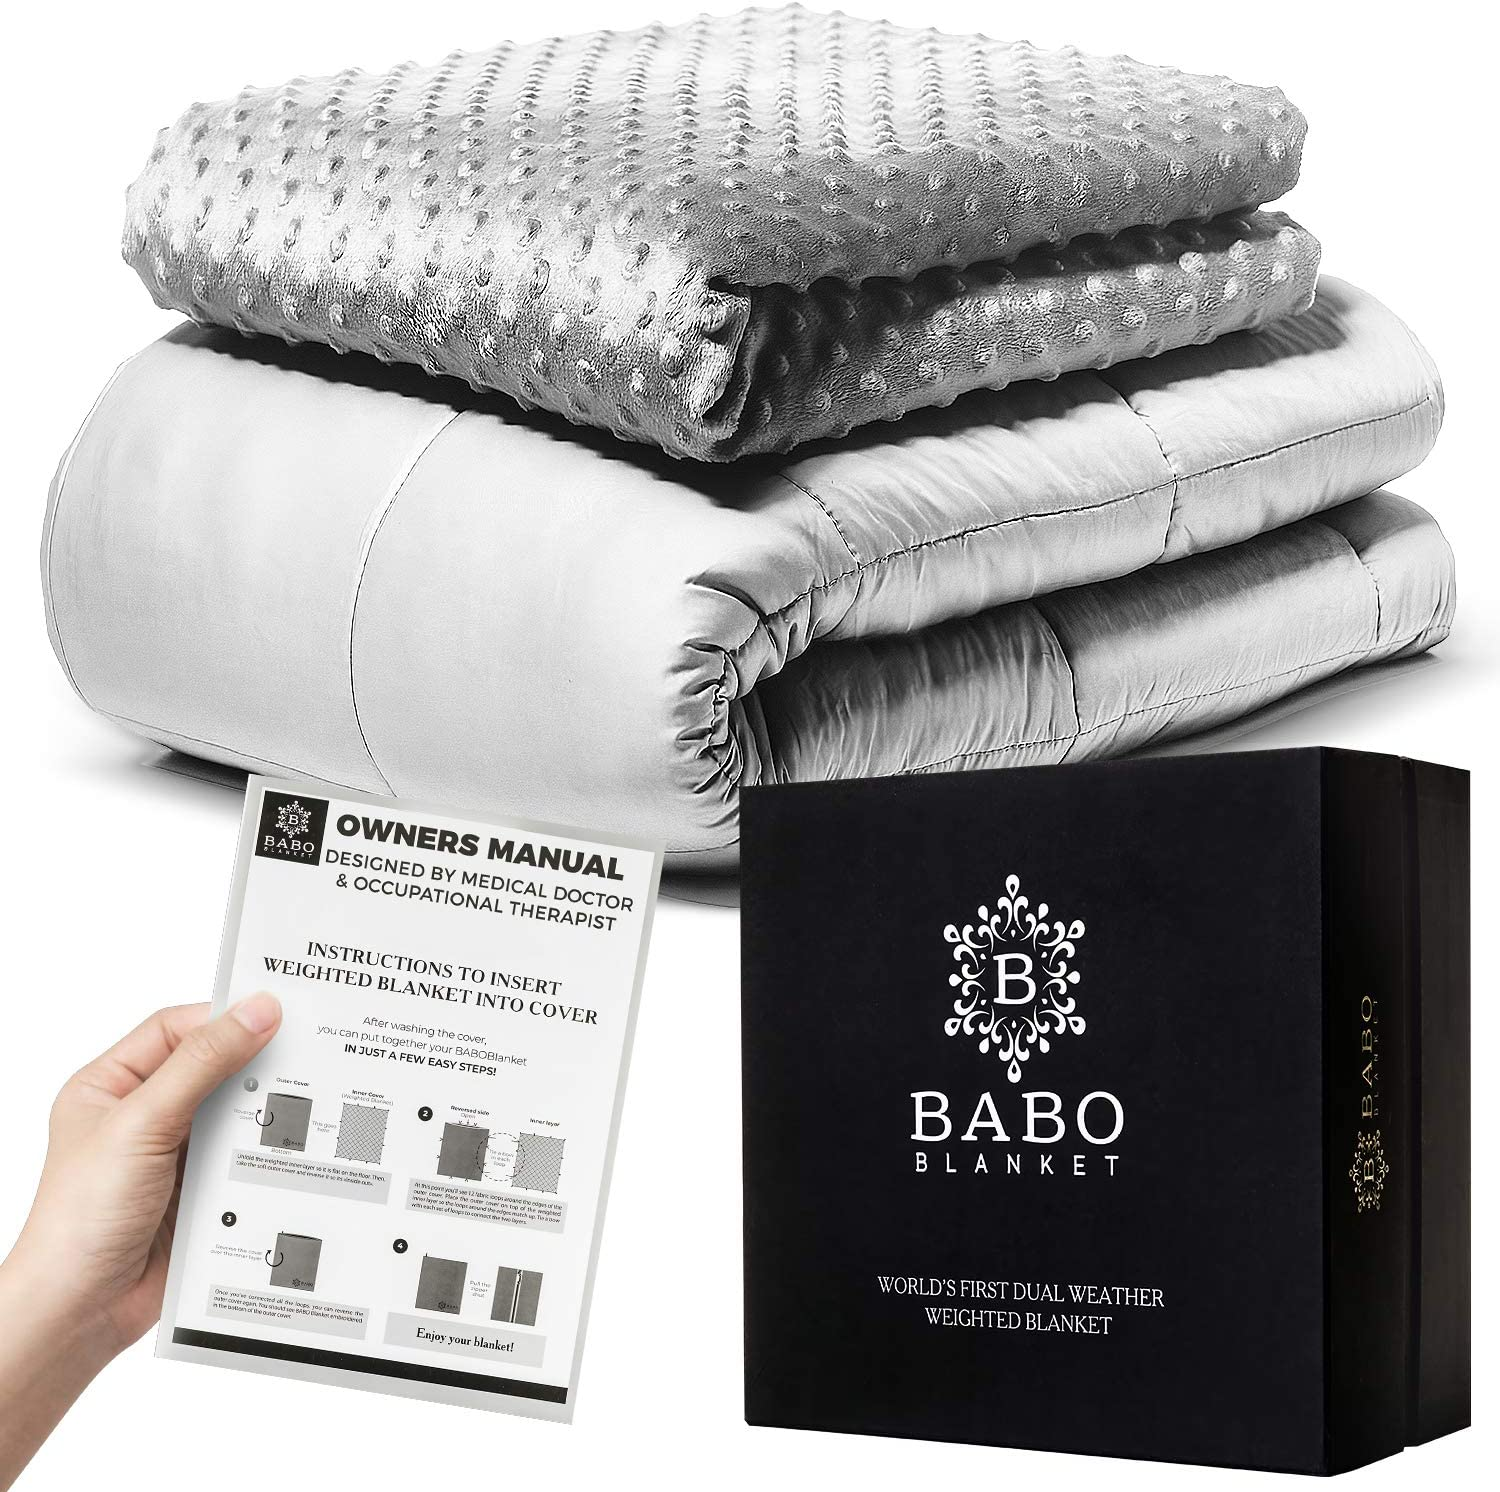 Mibio Cooling Weighted Blanket 15 lbs, 60x80 inch Queen Size, Cool Weighted Throw Anxiety Blanket, use as Heavy Blanket for Adults sleep blankets - 81LHYHiKHhL - Sleep blankets review – benefits of sleeping with weighted blankets